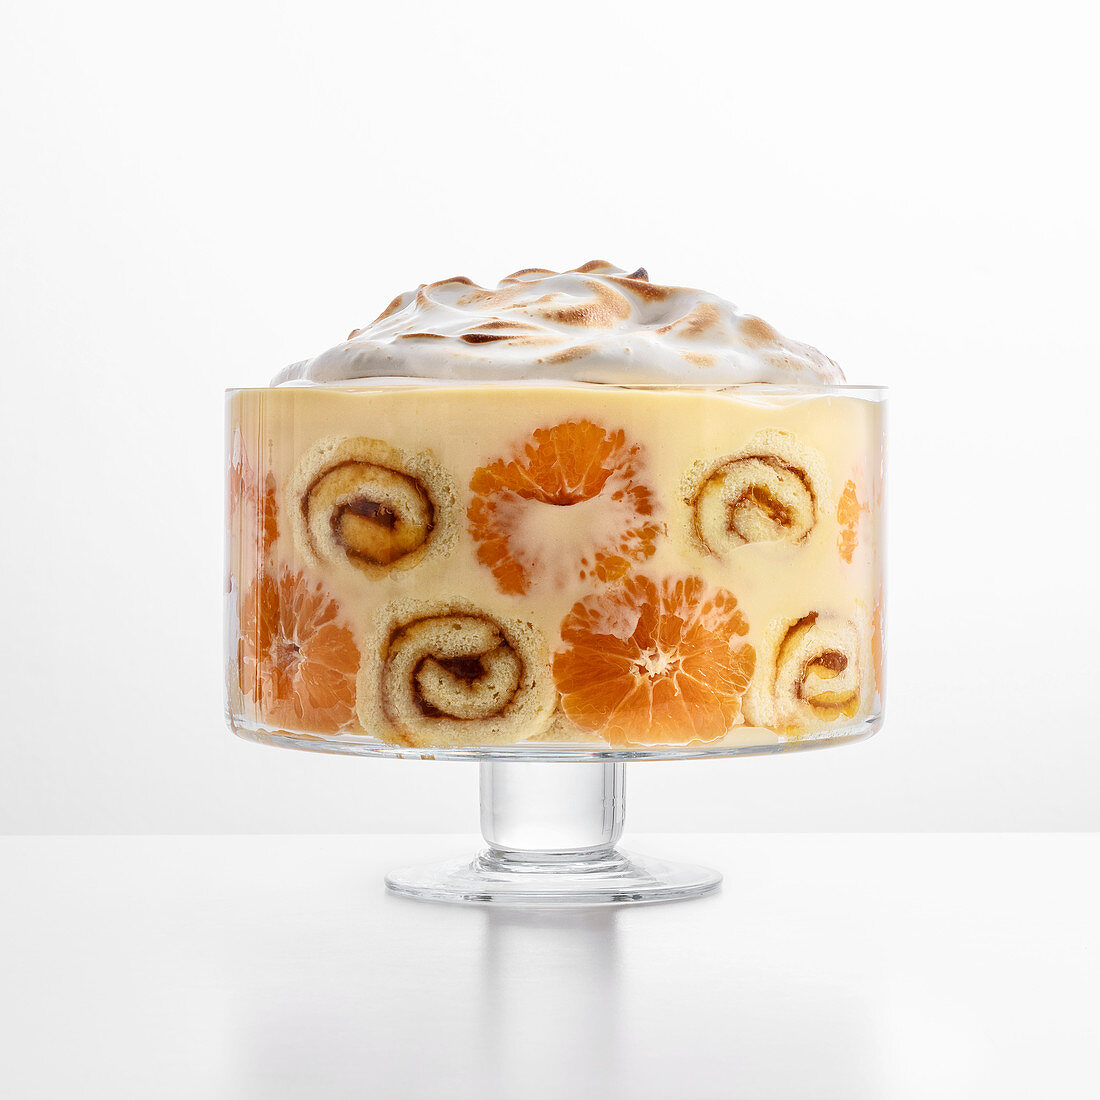 Sponge and clementine trifle with lime cream and a meringue topping